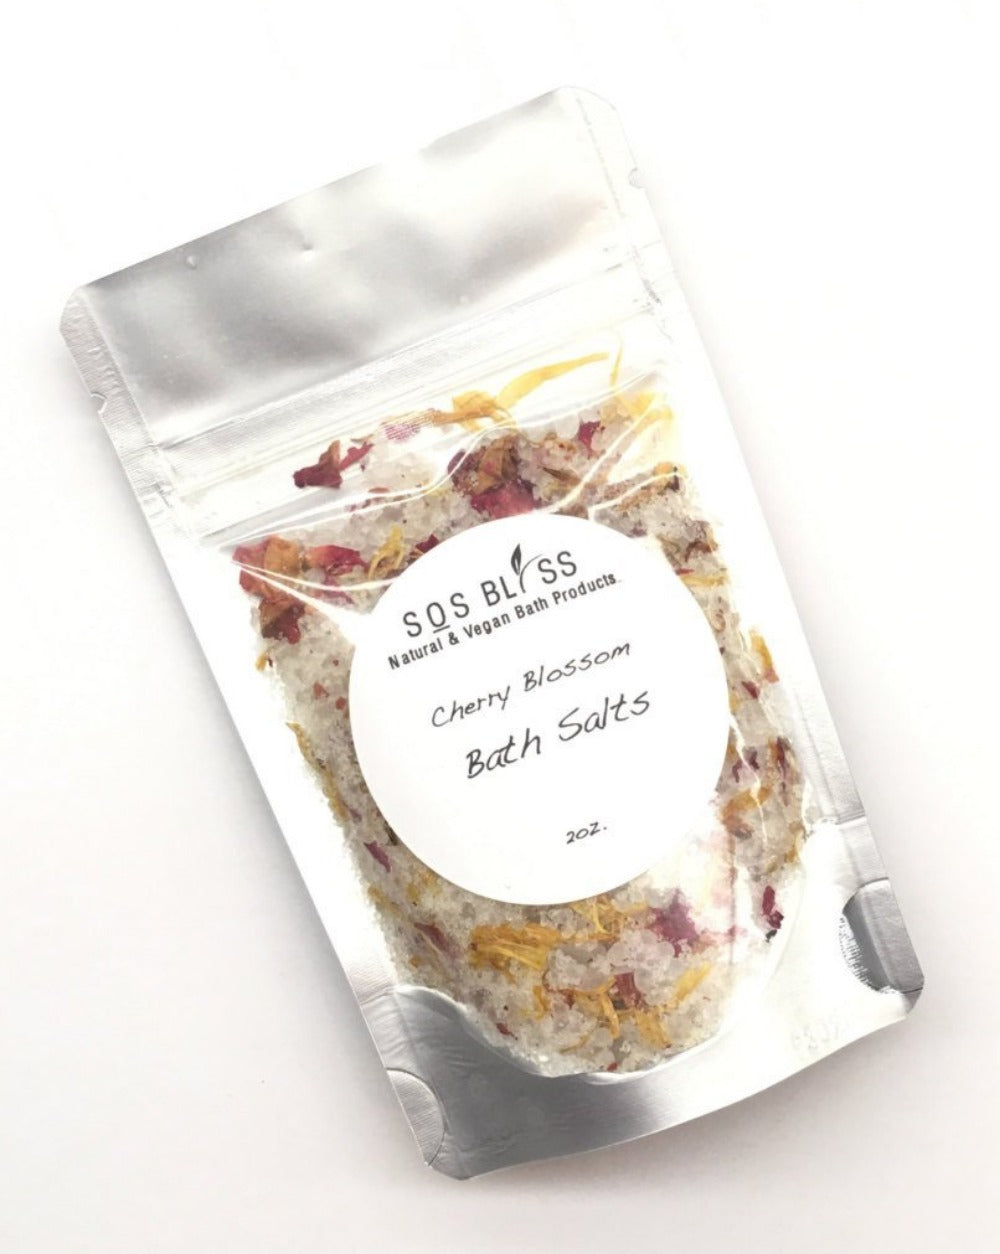 Cherry Blossom Bath Salts